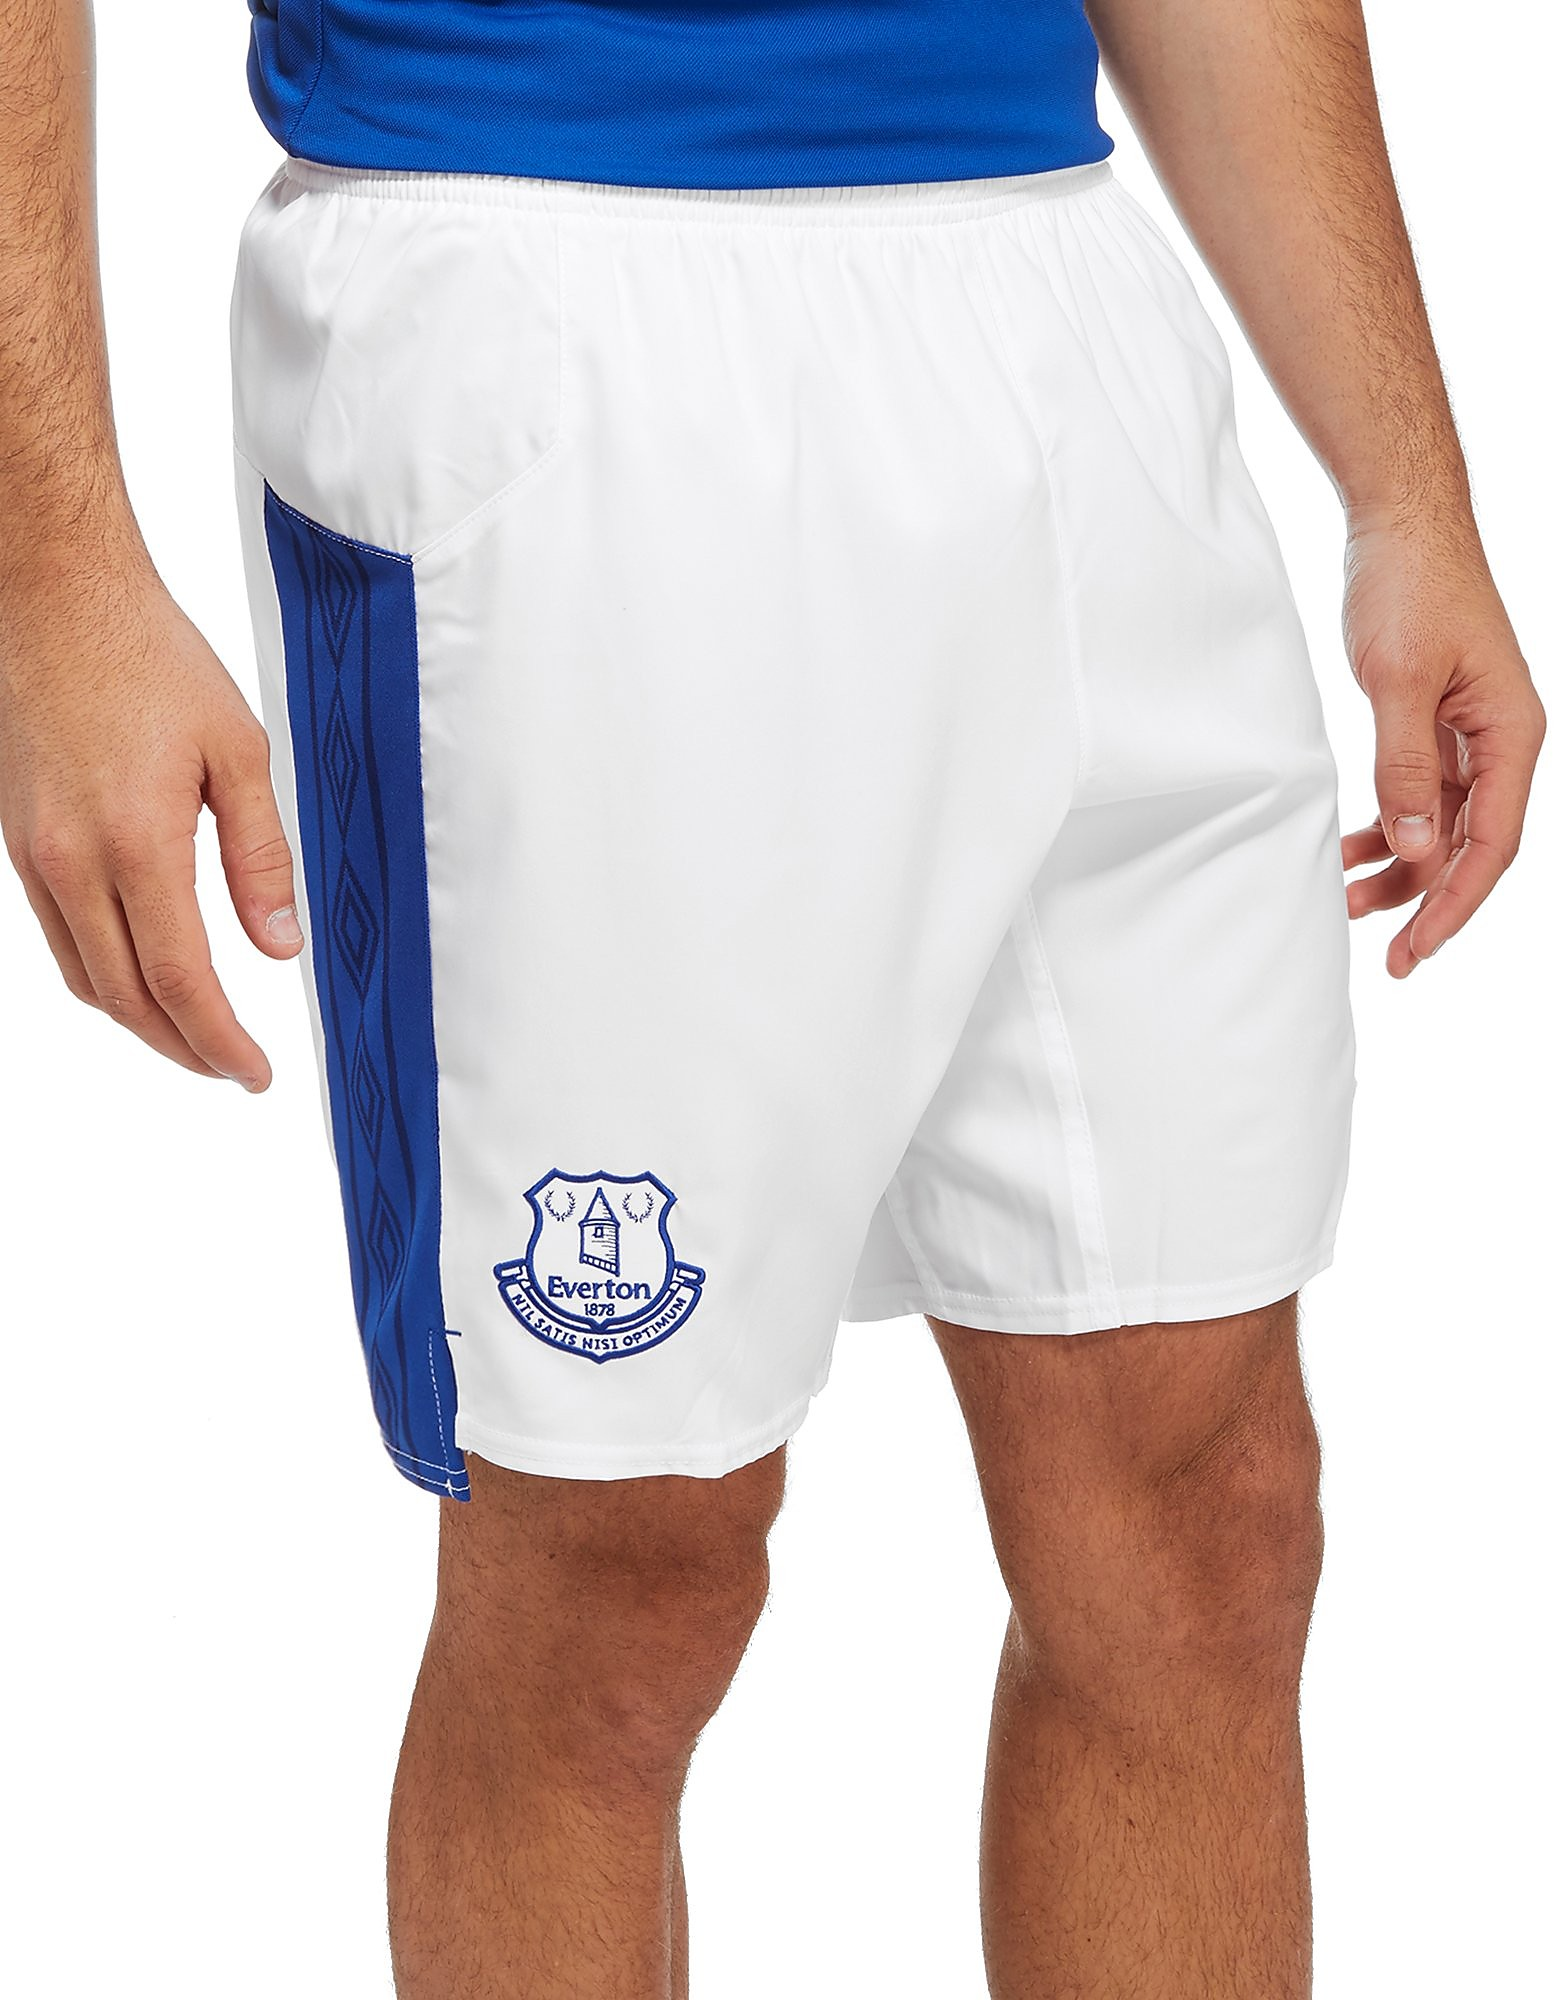 Umbro Everton FC 2017/18 Home Shorts PRE ORDER